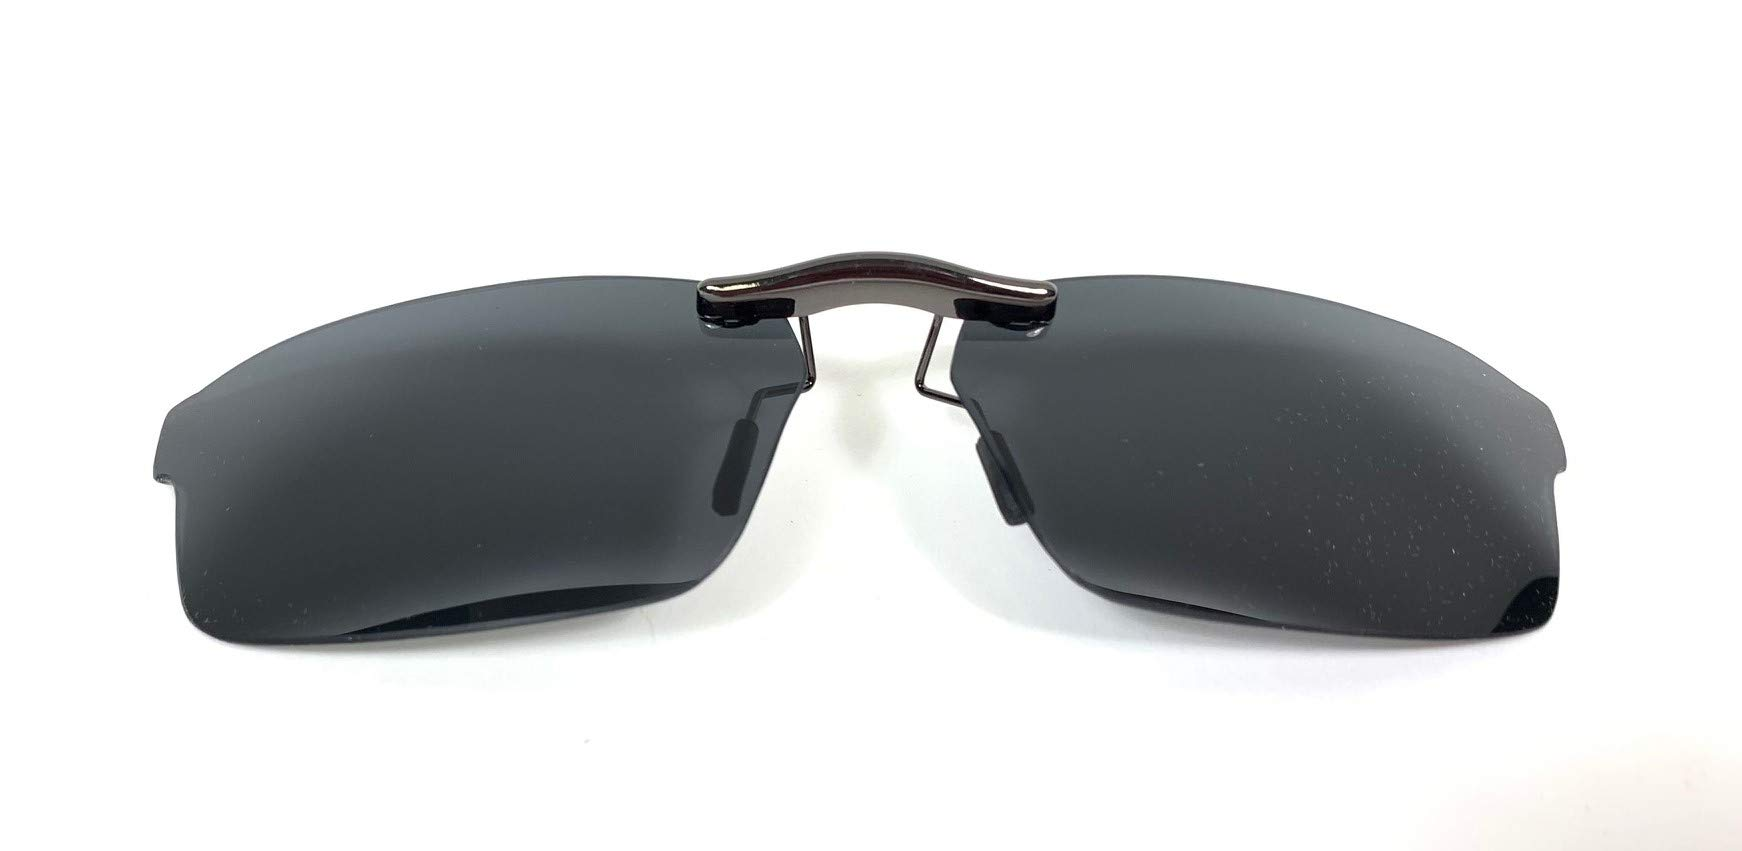 Custom Polarized CLIP-ON Sunglasses (Color: Grey) FOR Ray-Ban RB5279 Size 55x18 (Frame NOT Included) by Pasadena Shades